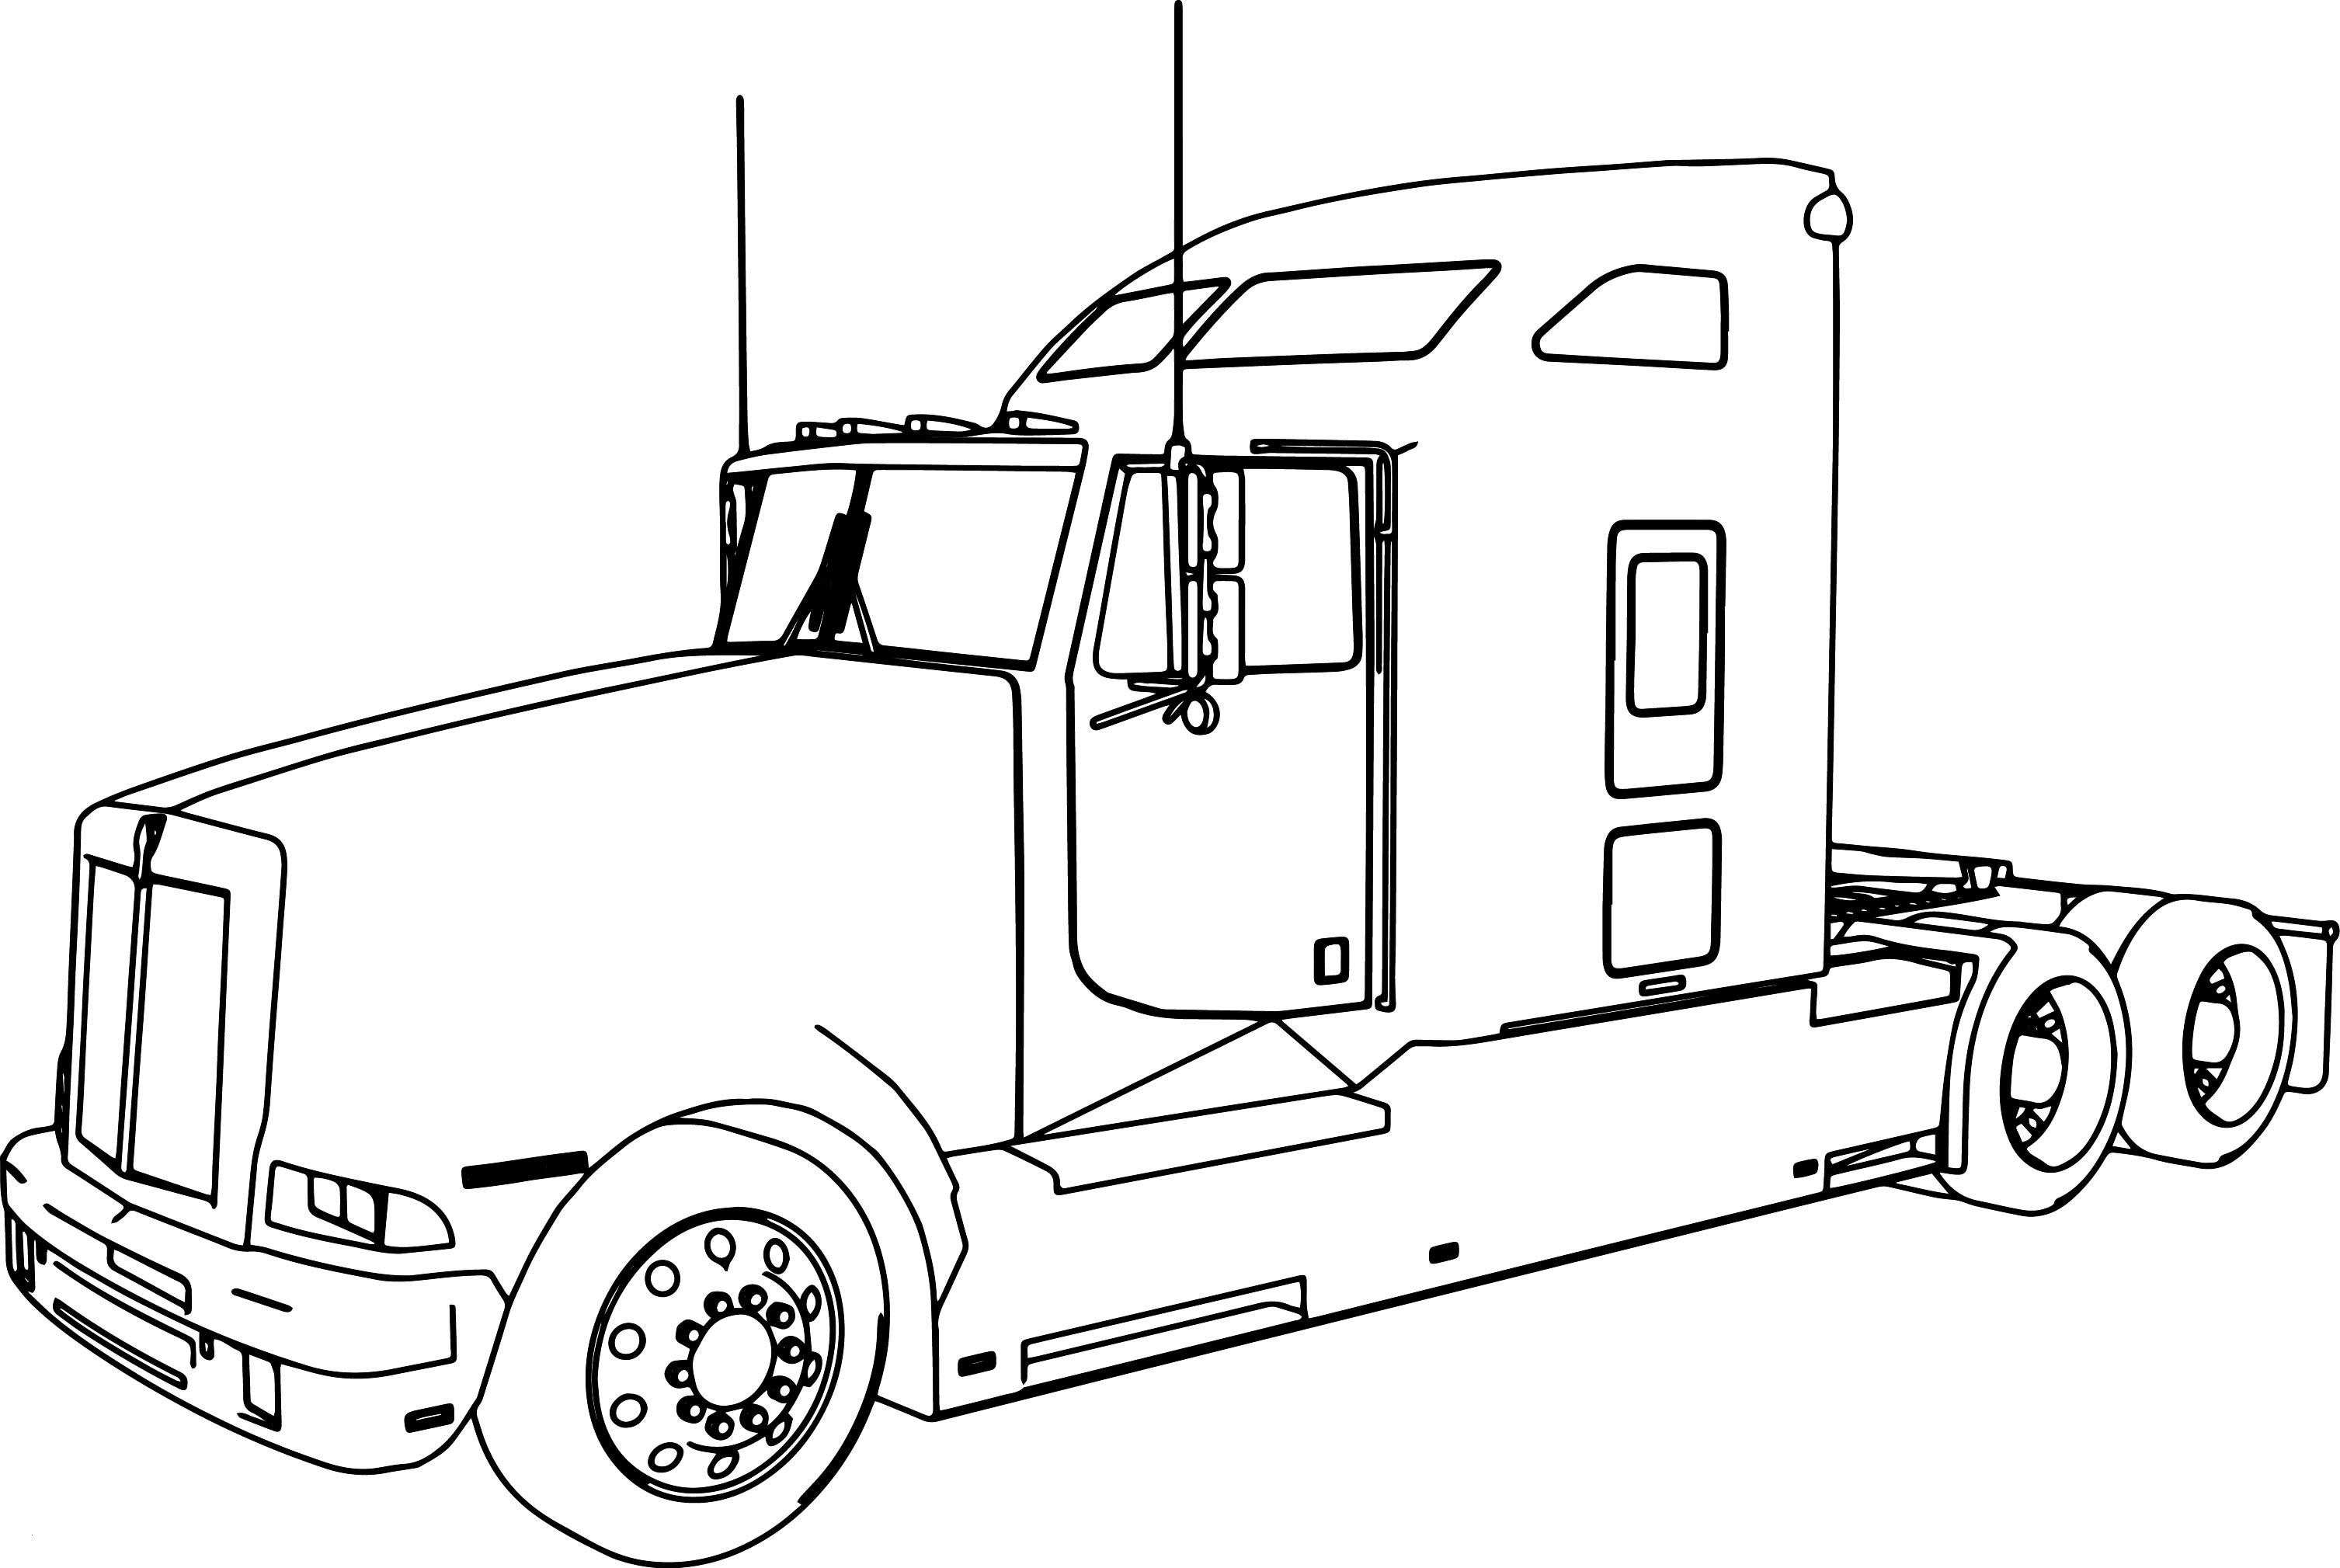 Tractor Trailer Coloring Pages  Download 19h - Free For Children